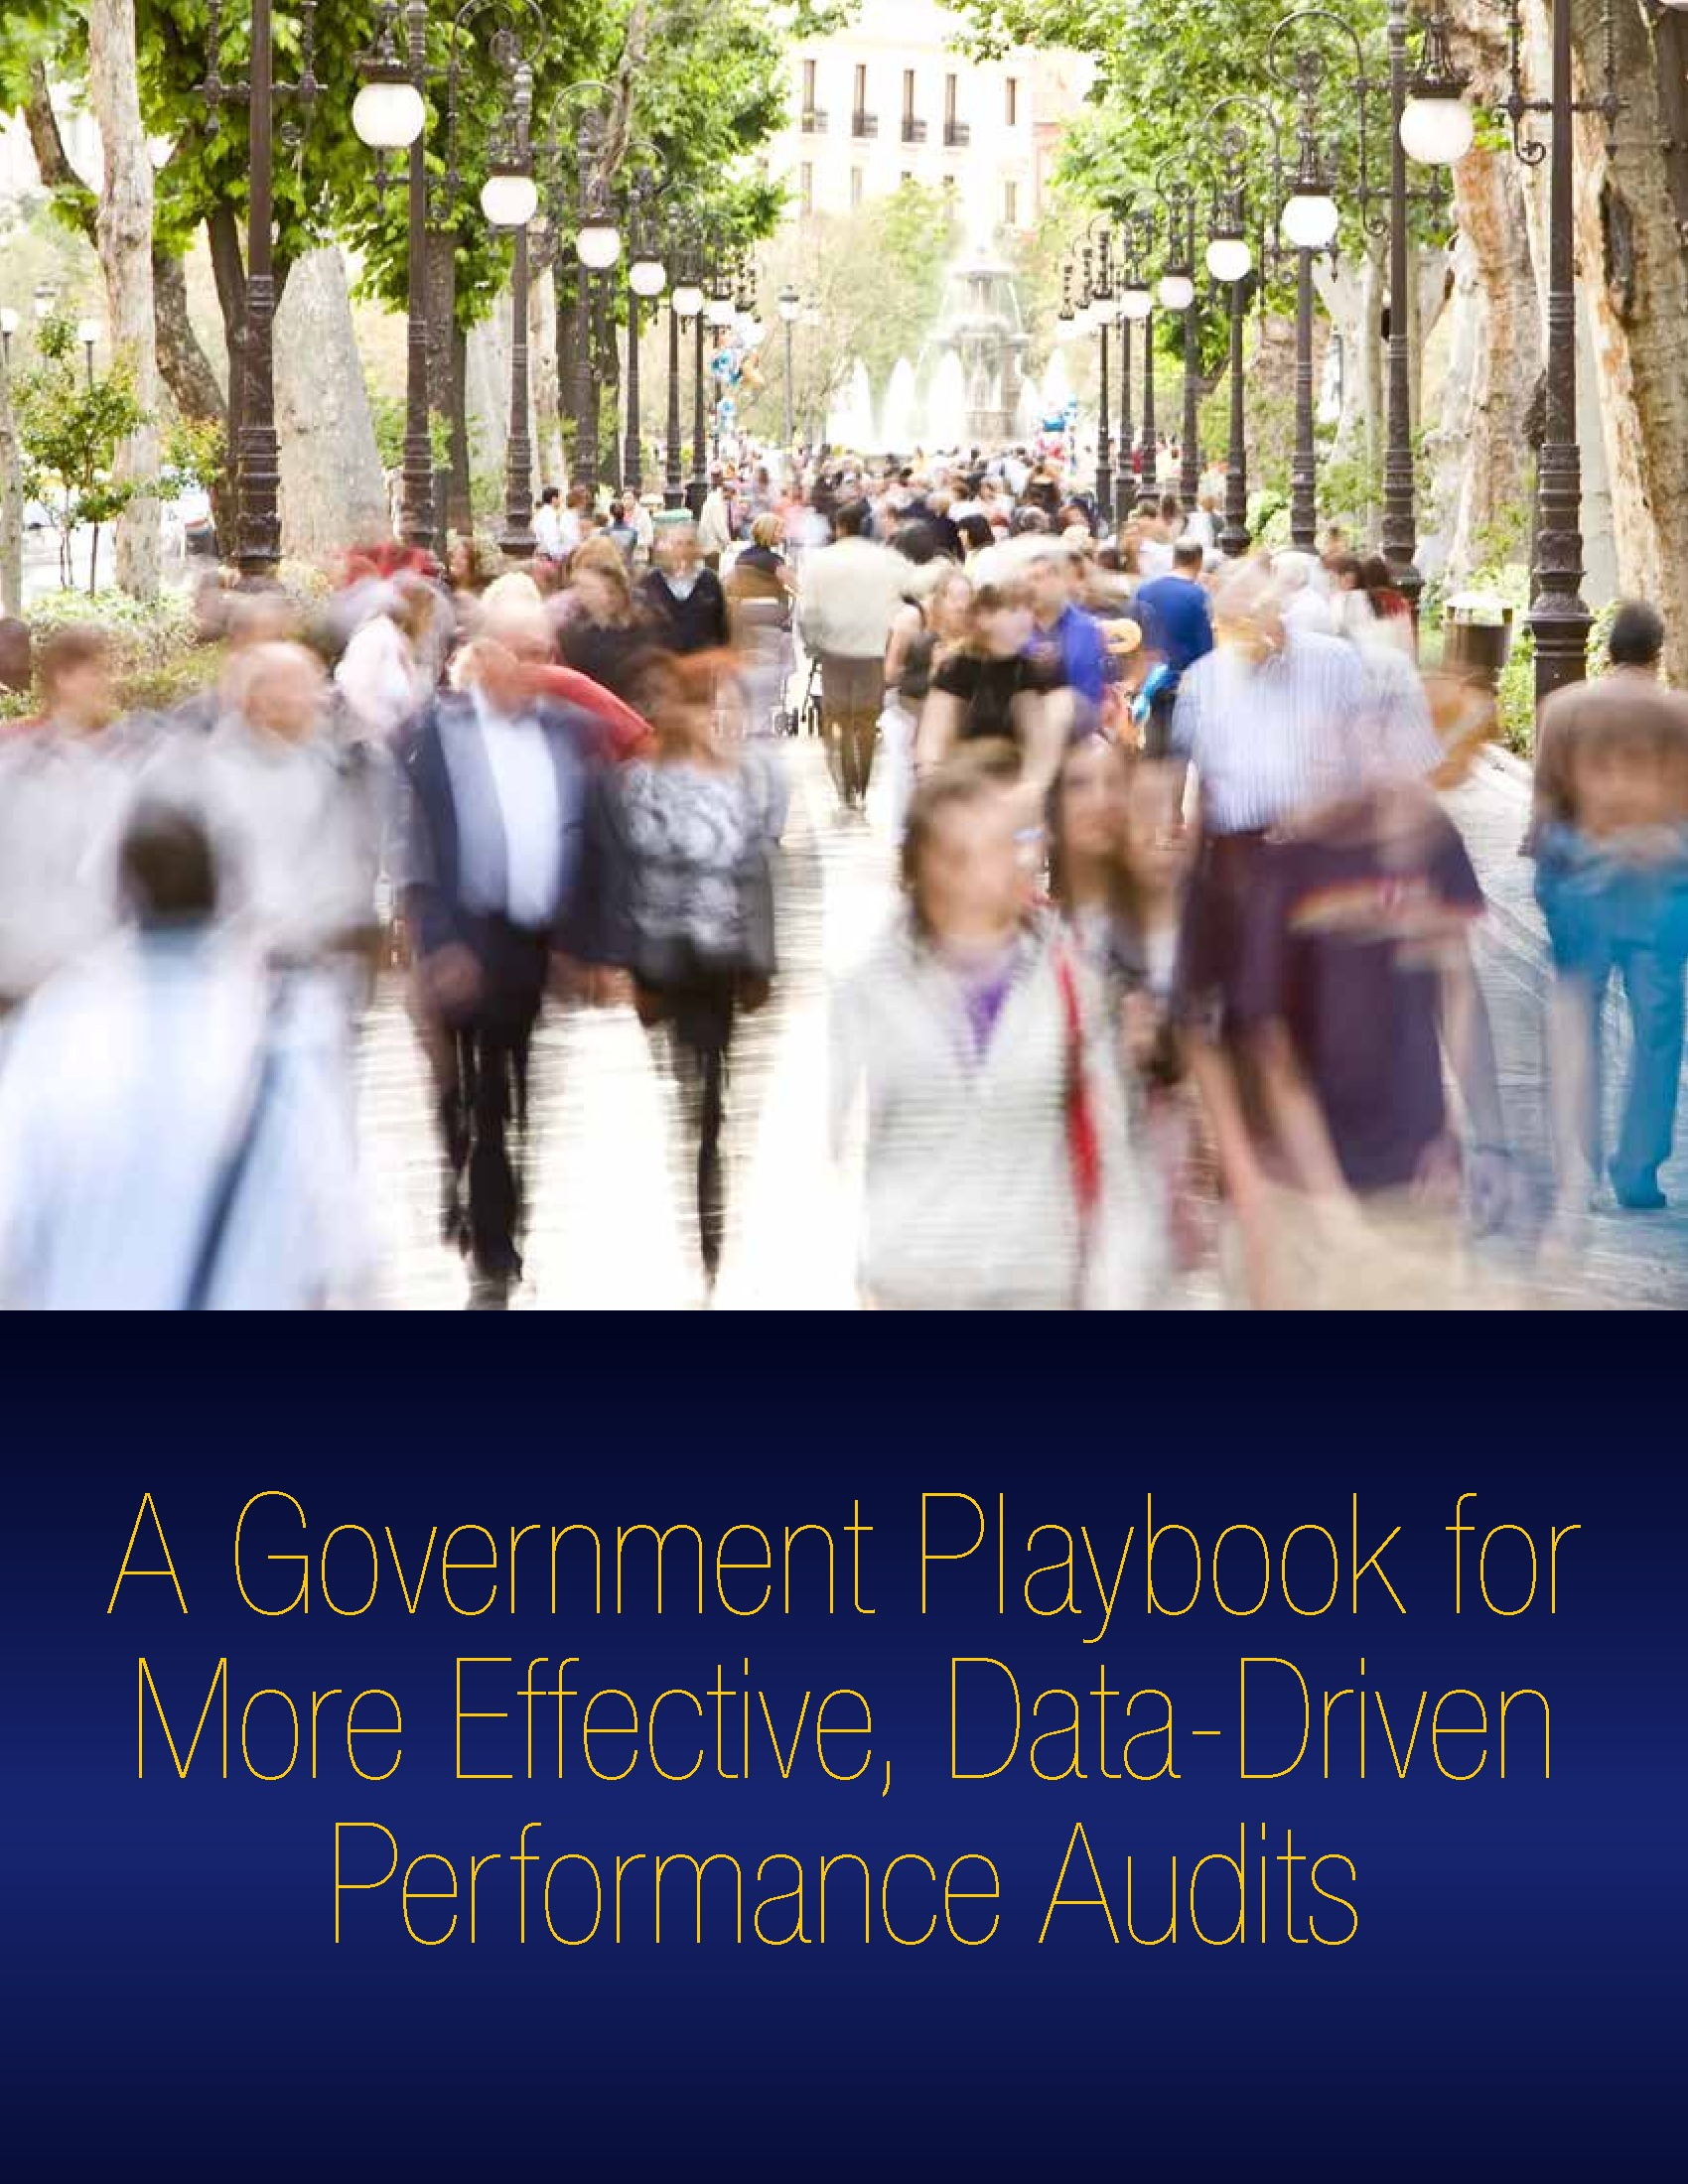 A Government Playbook for More Effective, Data-Driven Performance Audits